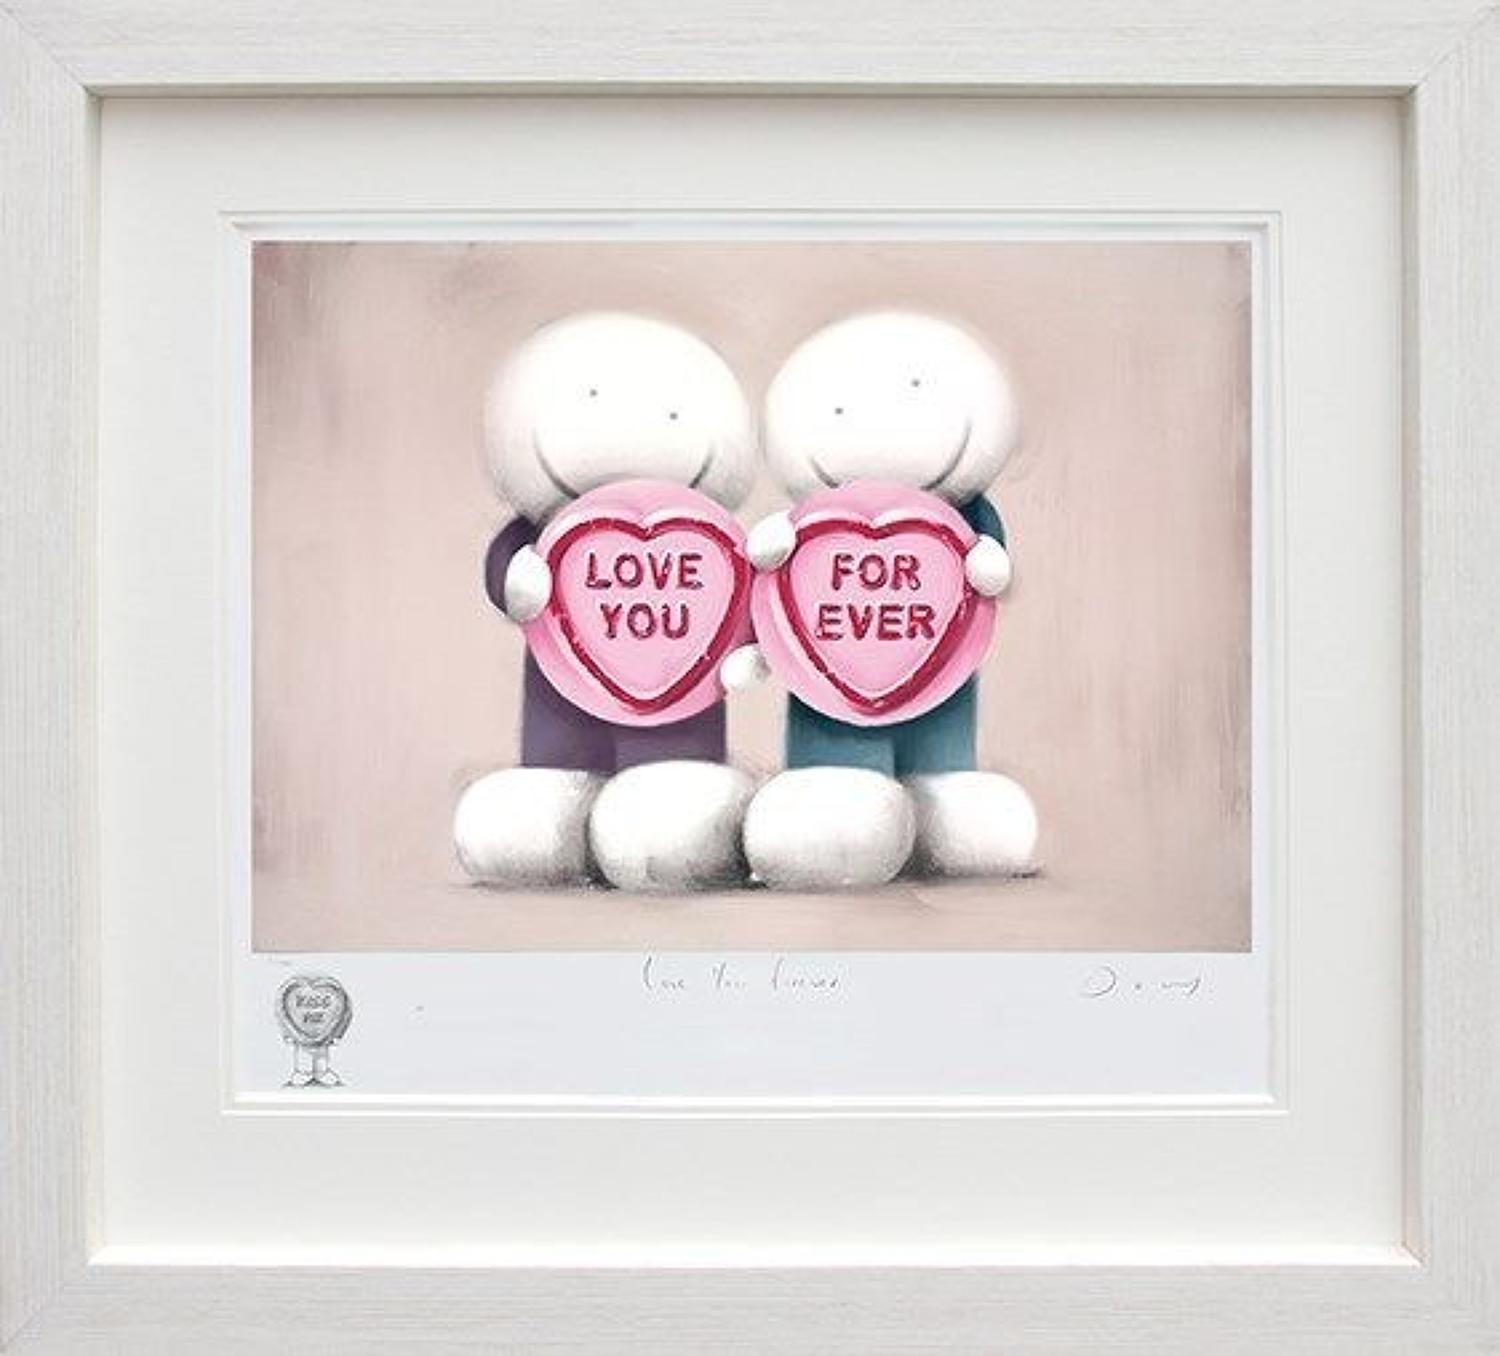 Love You Forever (Remarque) Framed Art Print by Doug Hyde